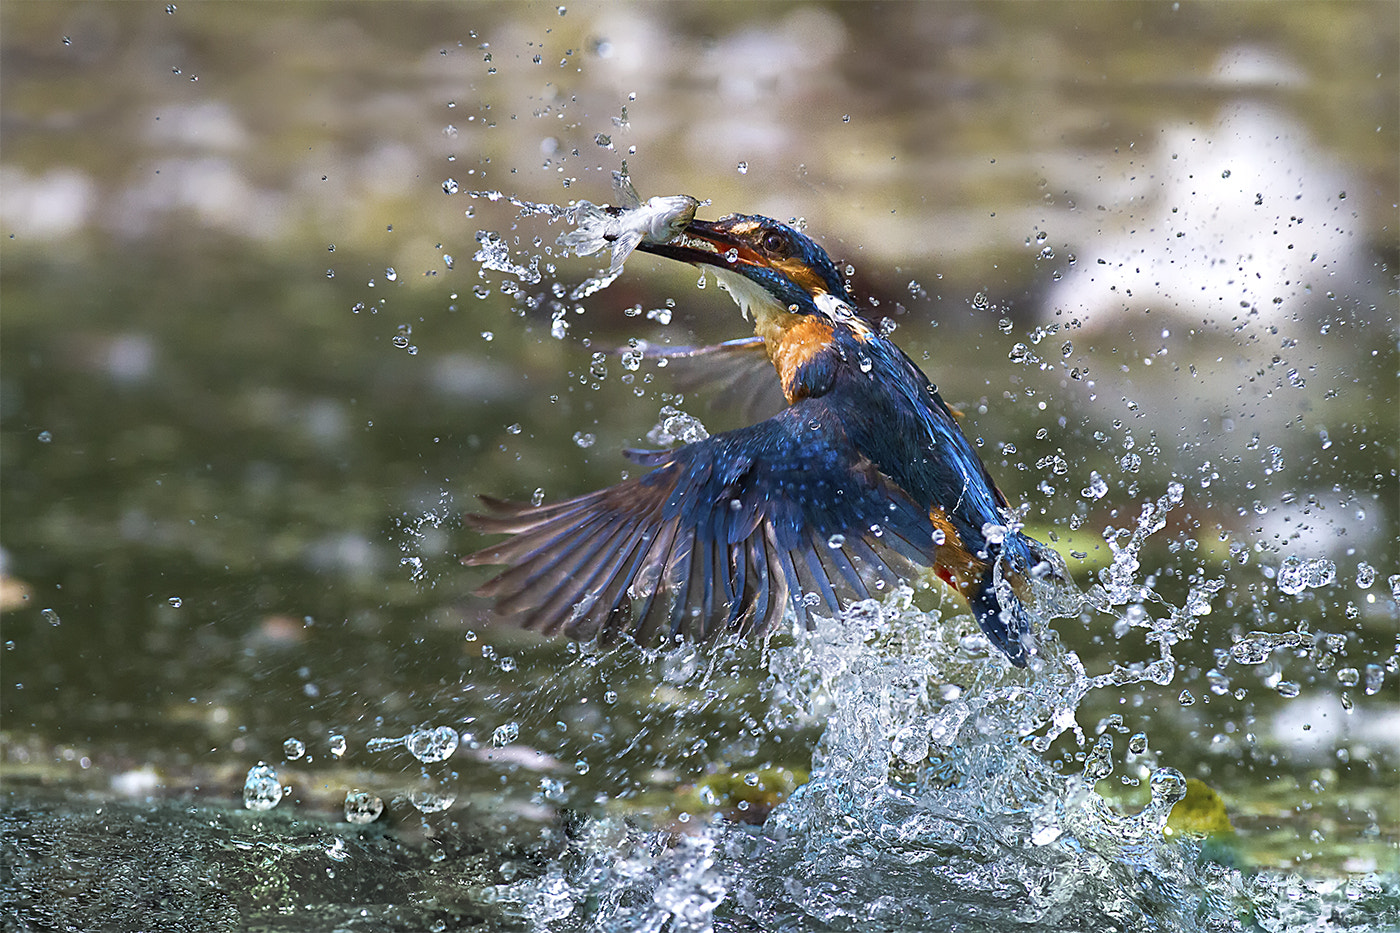 Photograph Catch! by Marco Redaelli on 500px